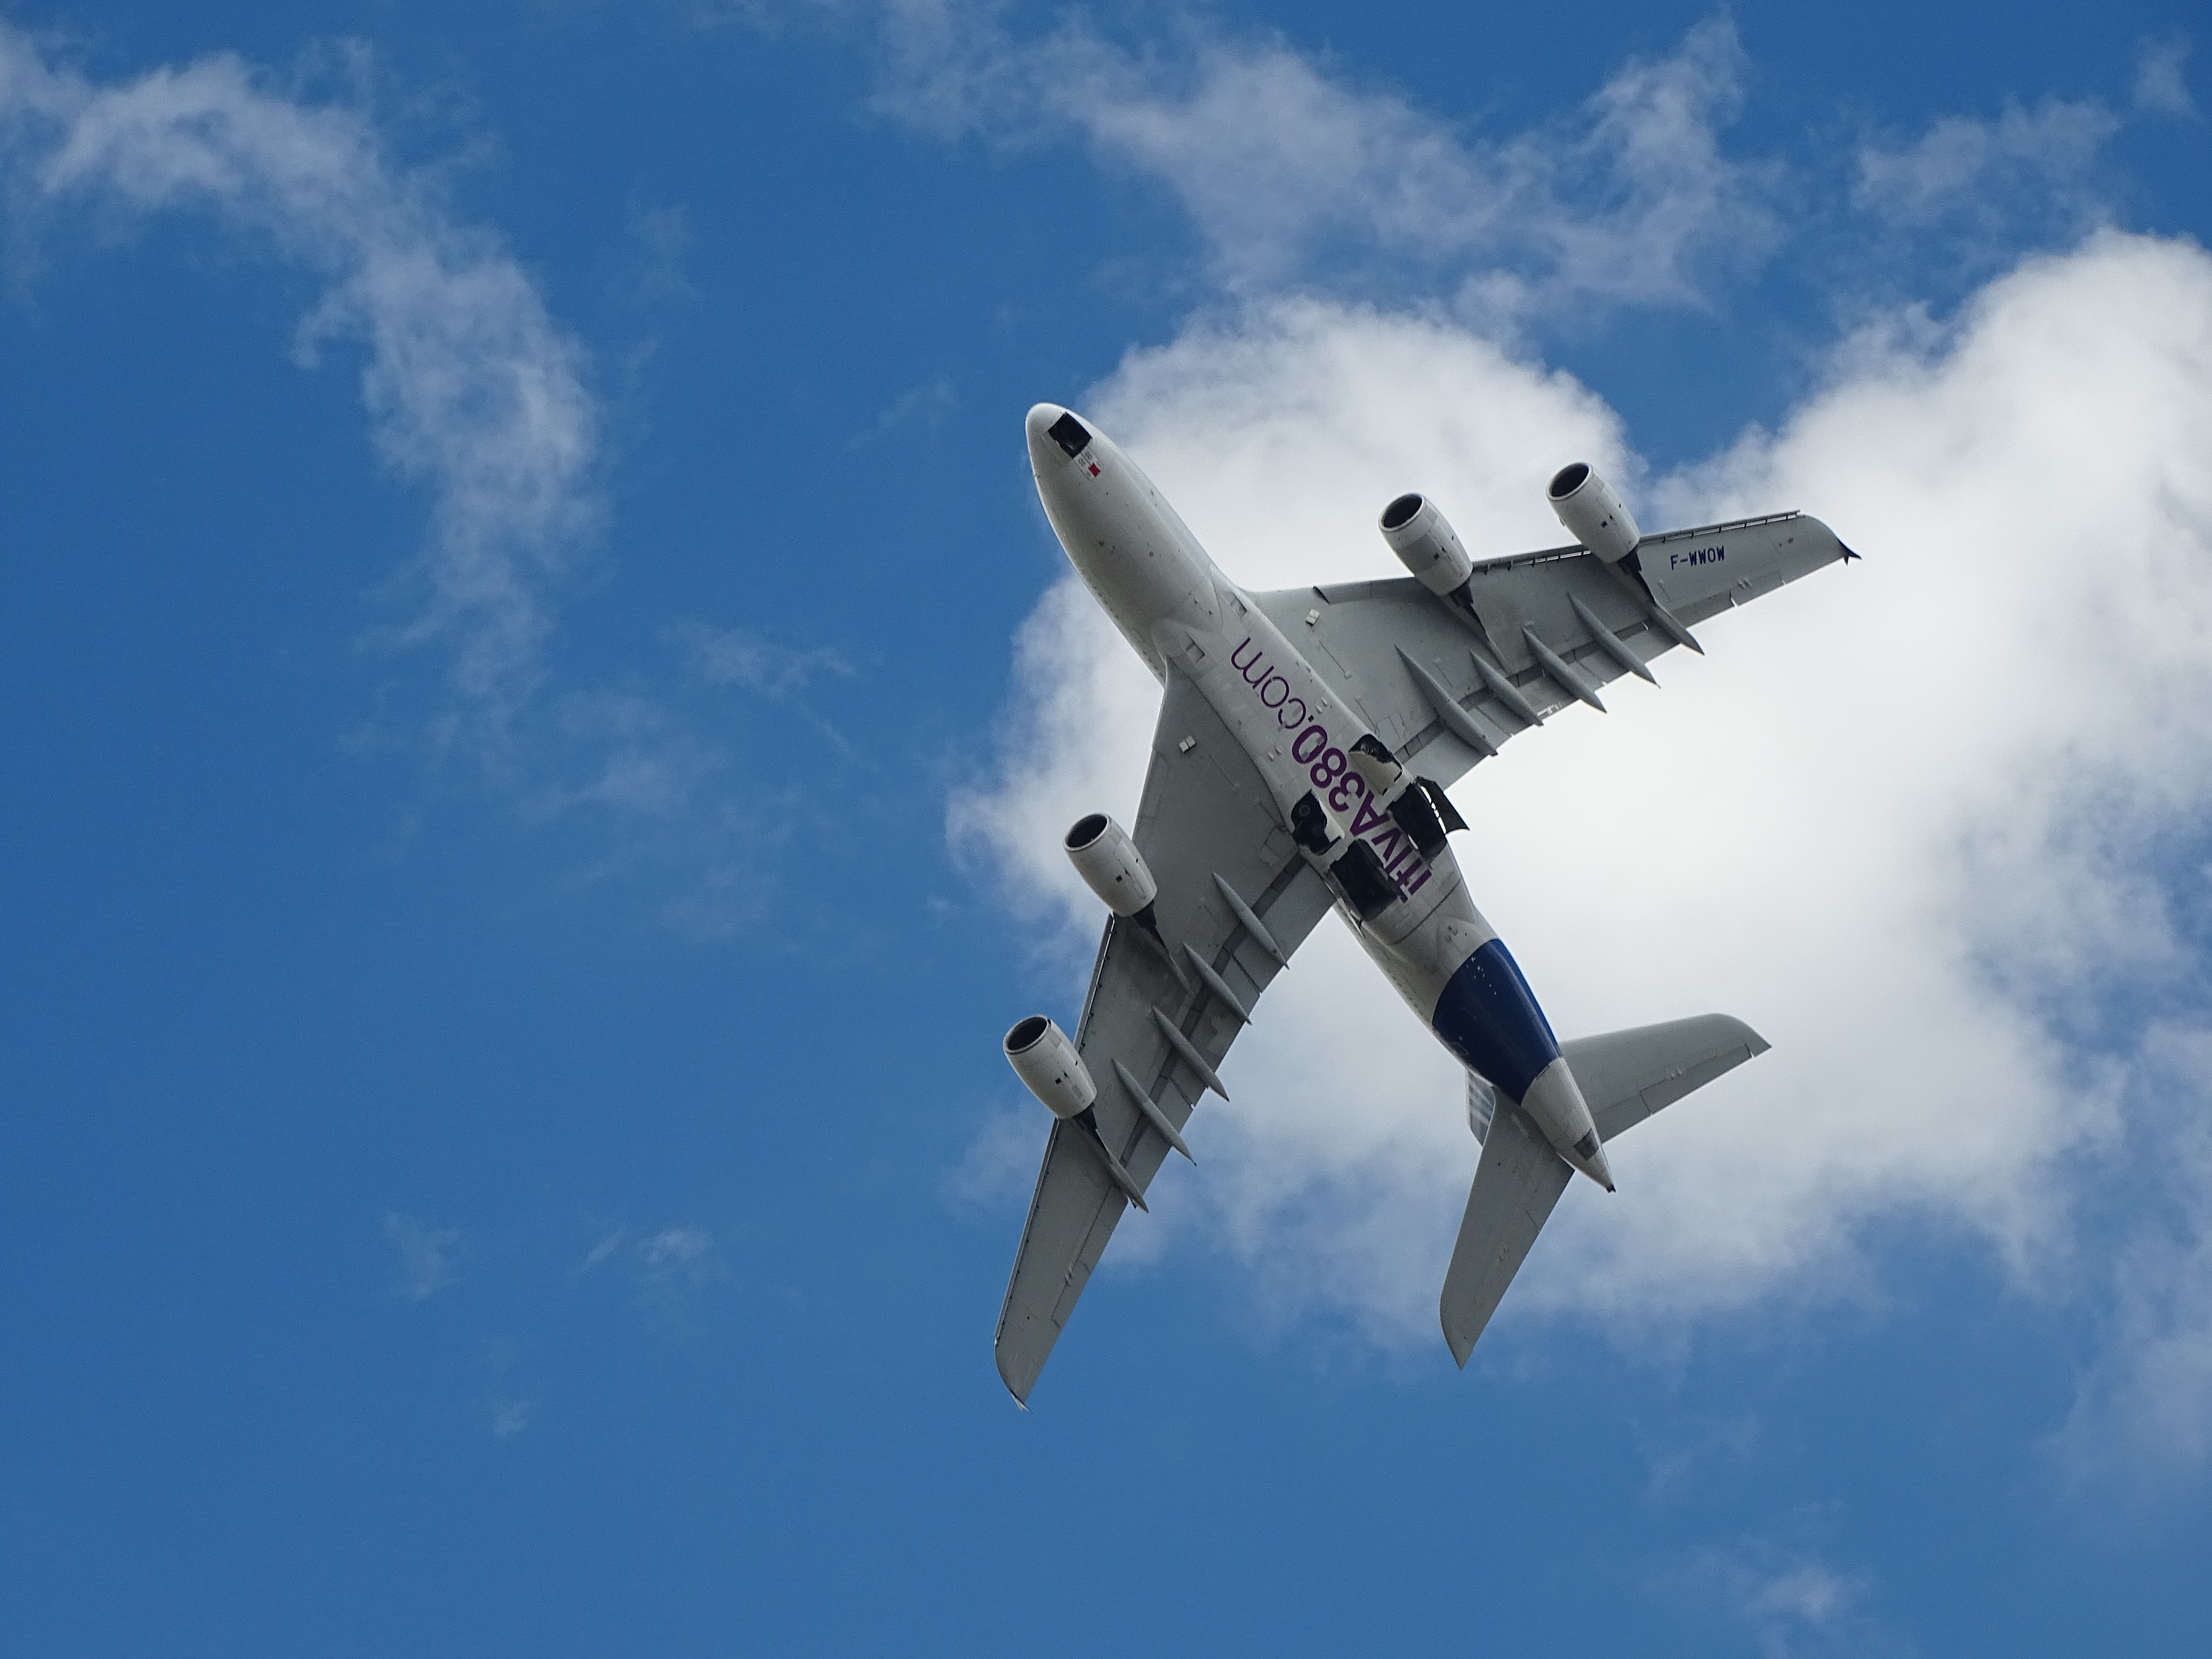 Planes dump fuel into the sky more than you'd expect. Here's why they do it.